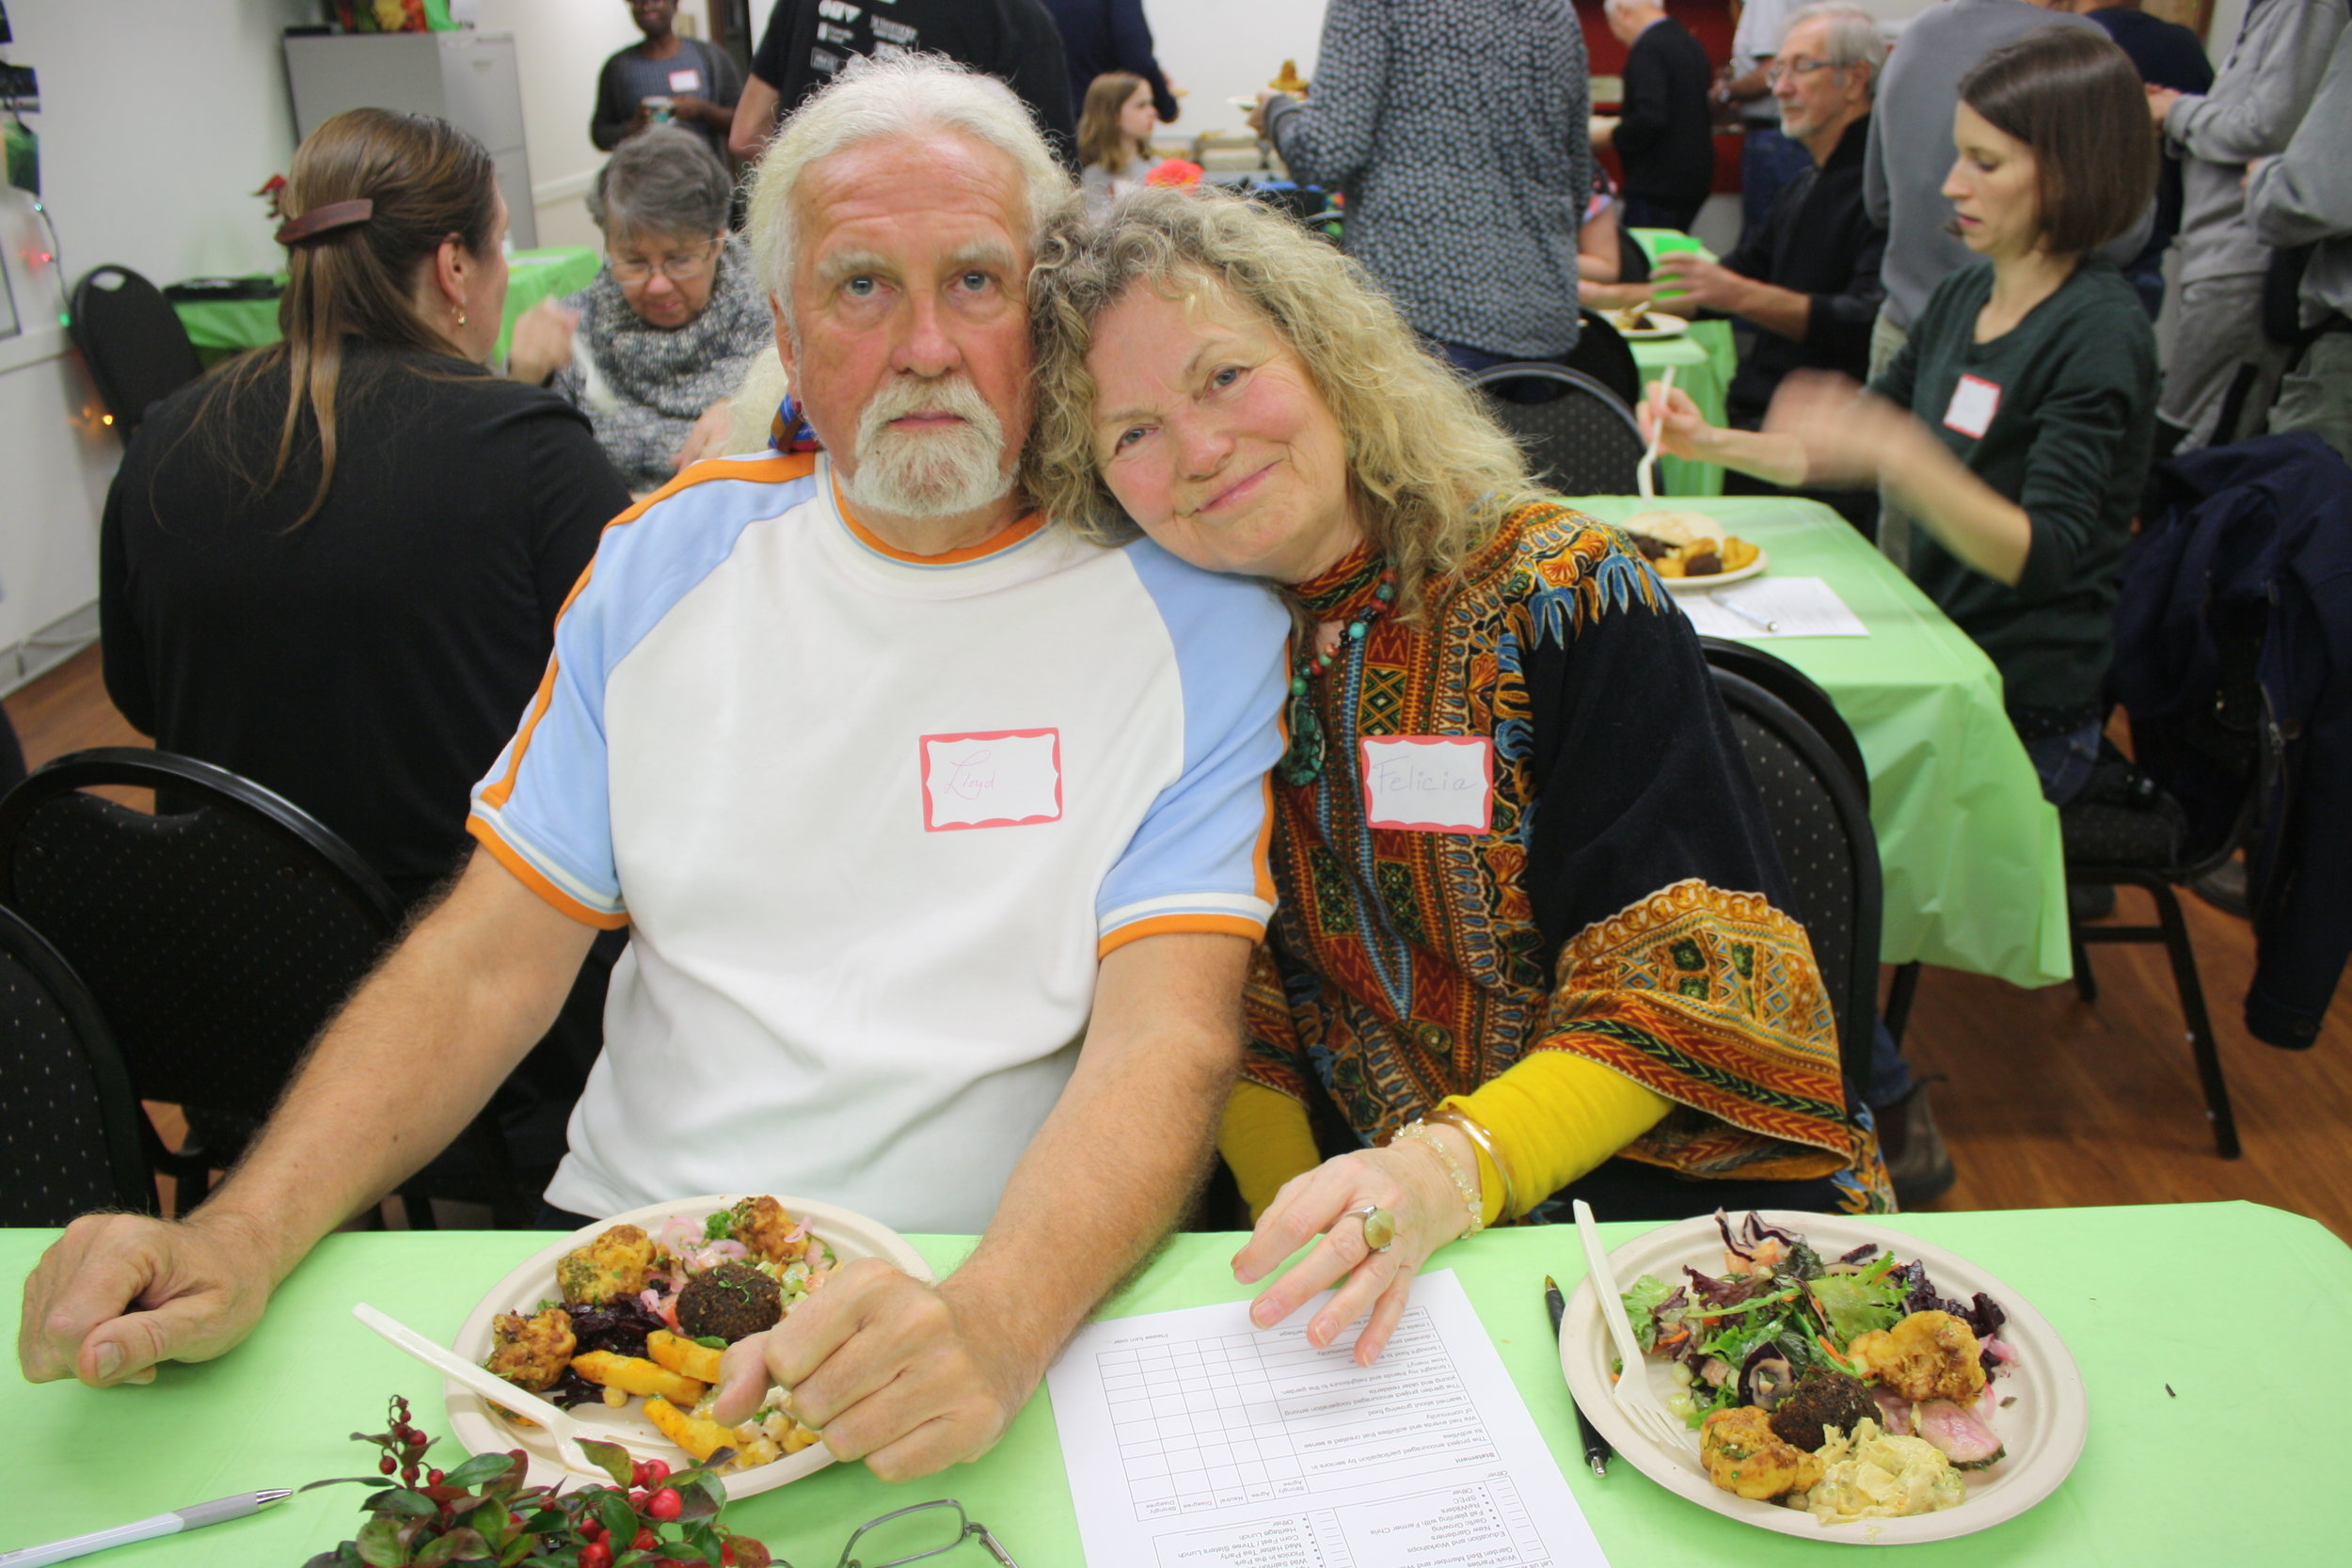 Happy volunteers Lloyd and Felicia enjoying the meal.